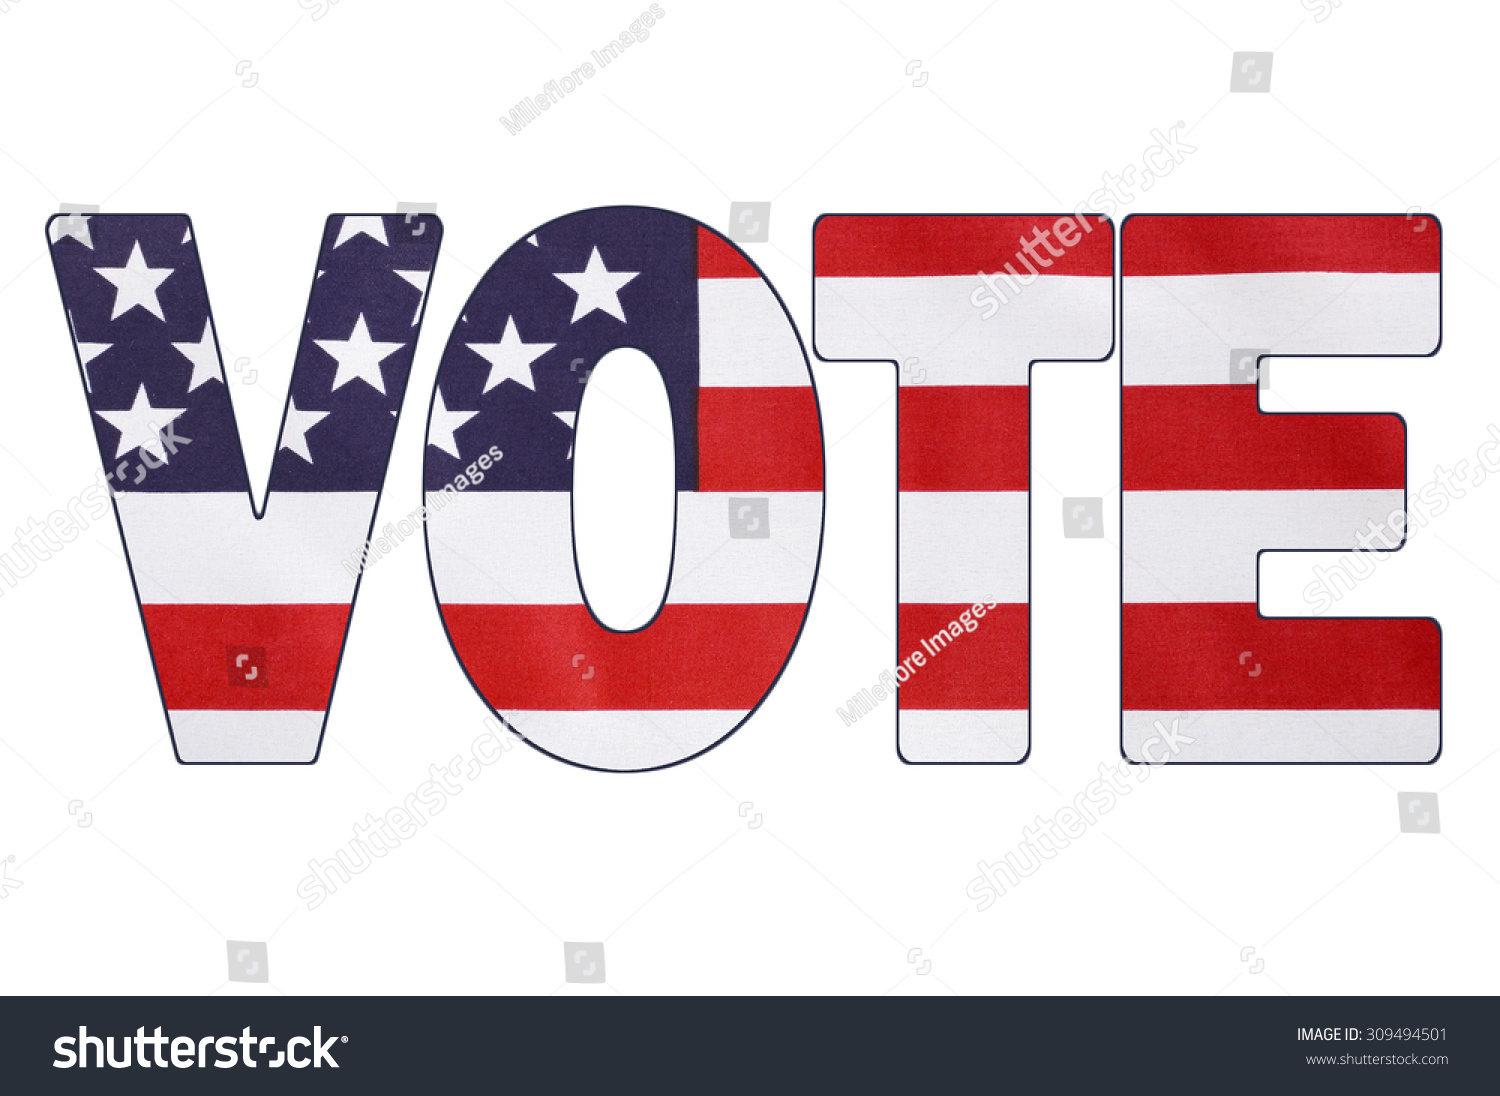 USA 2016 Presidential Election with image of Stars and Stripes in outline of the word, VOTE.